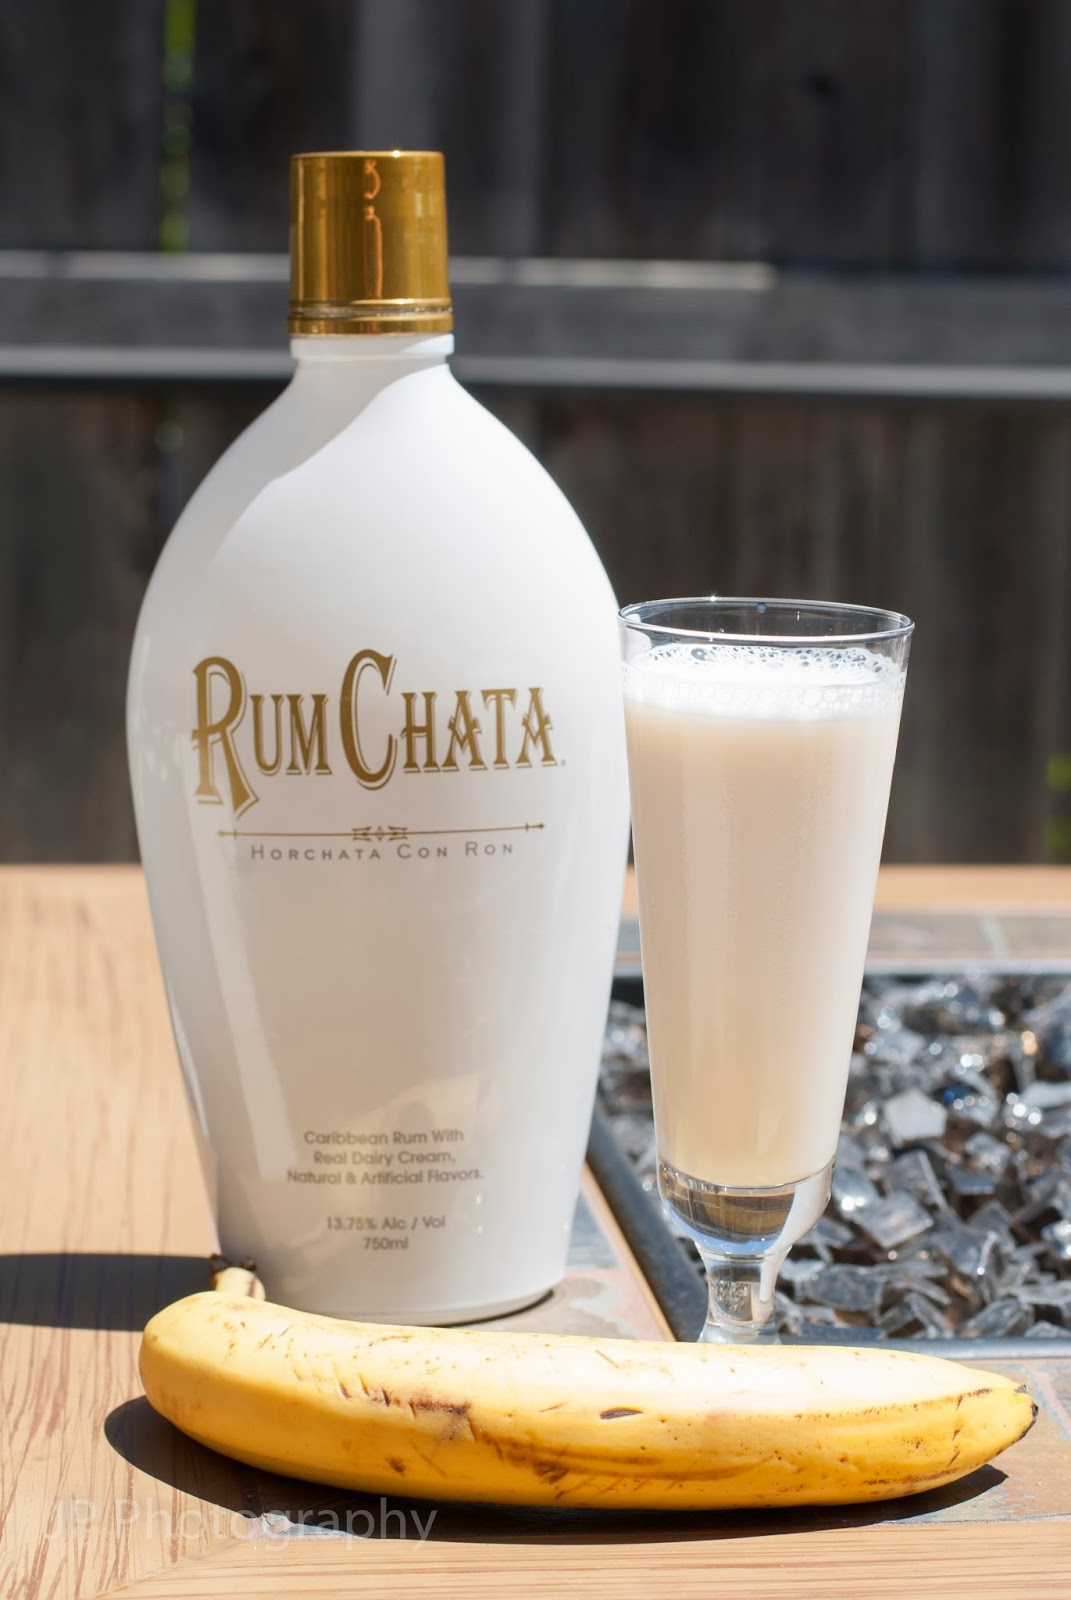 Rum Chata, vanilla vodka, banana liqueur, butterscotch schnapps